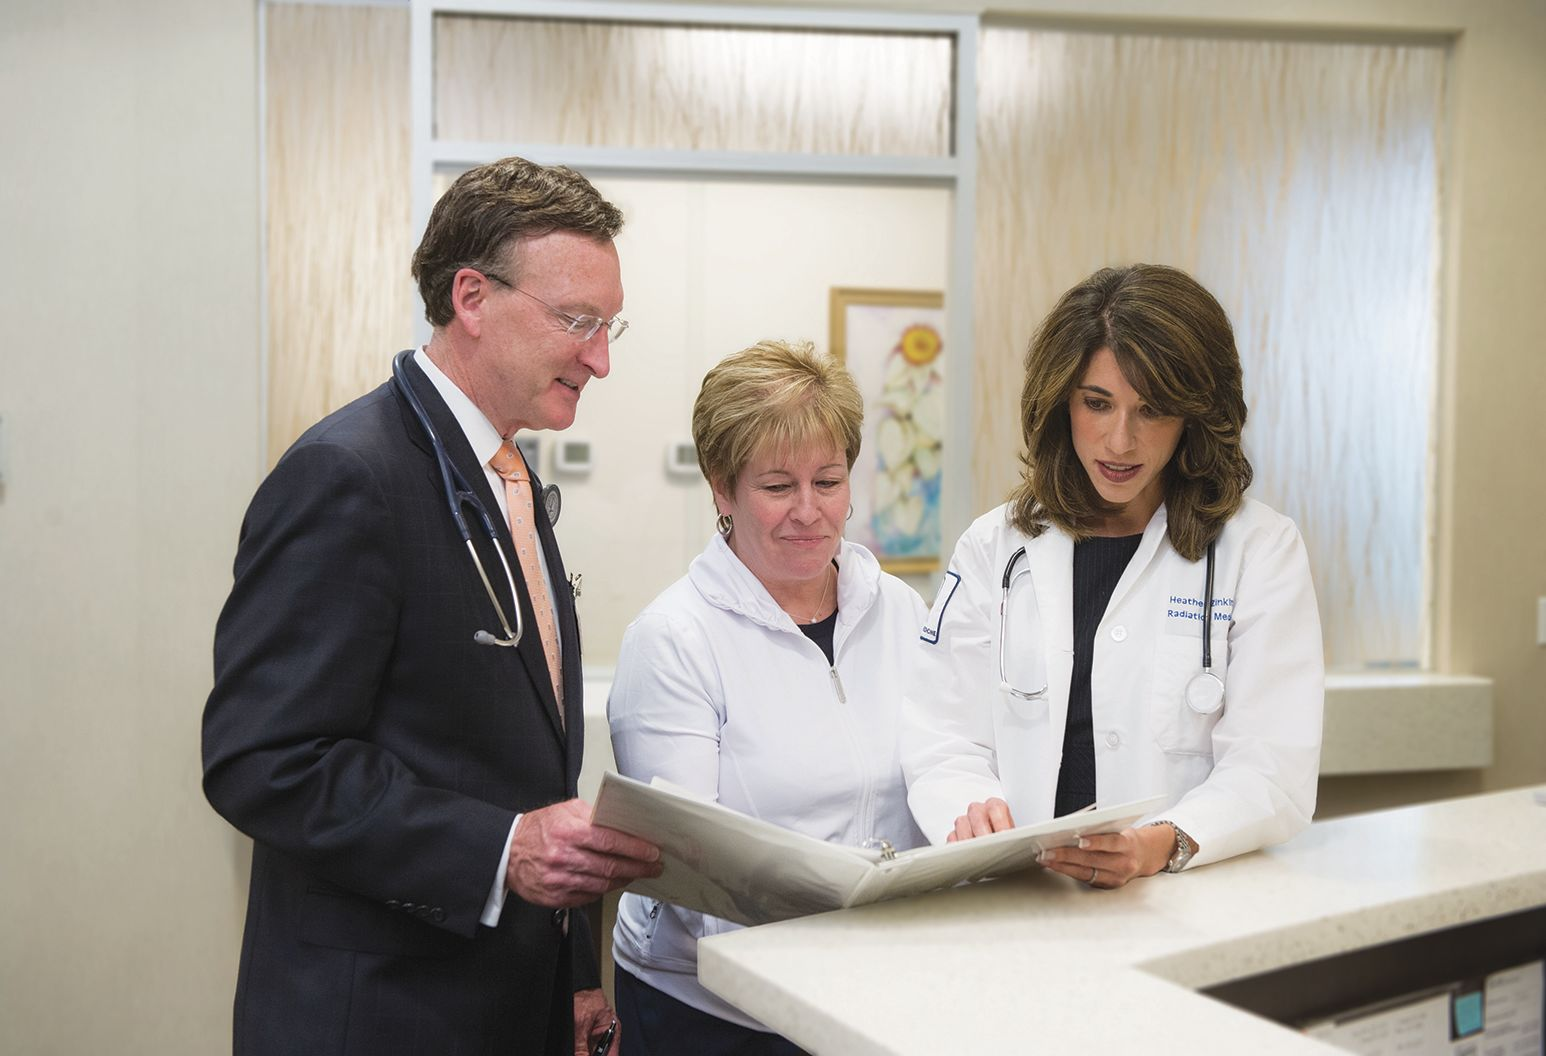 Three doctors reviewing a patient chart